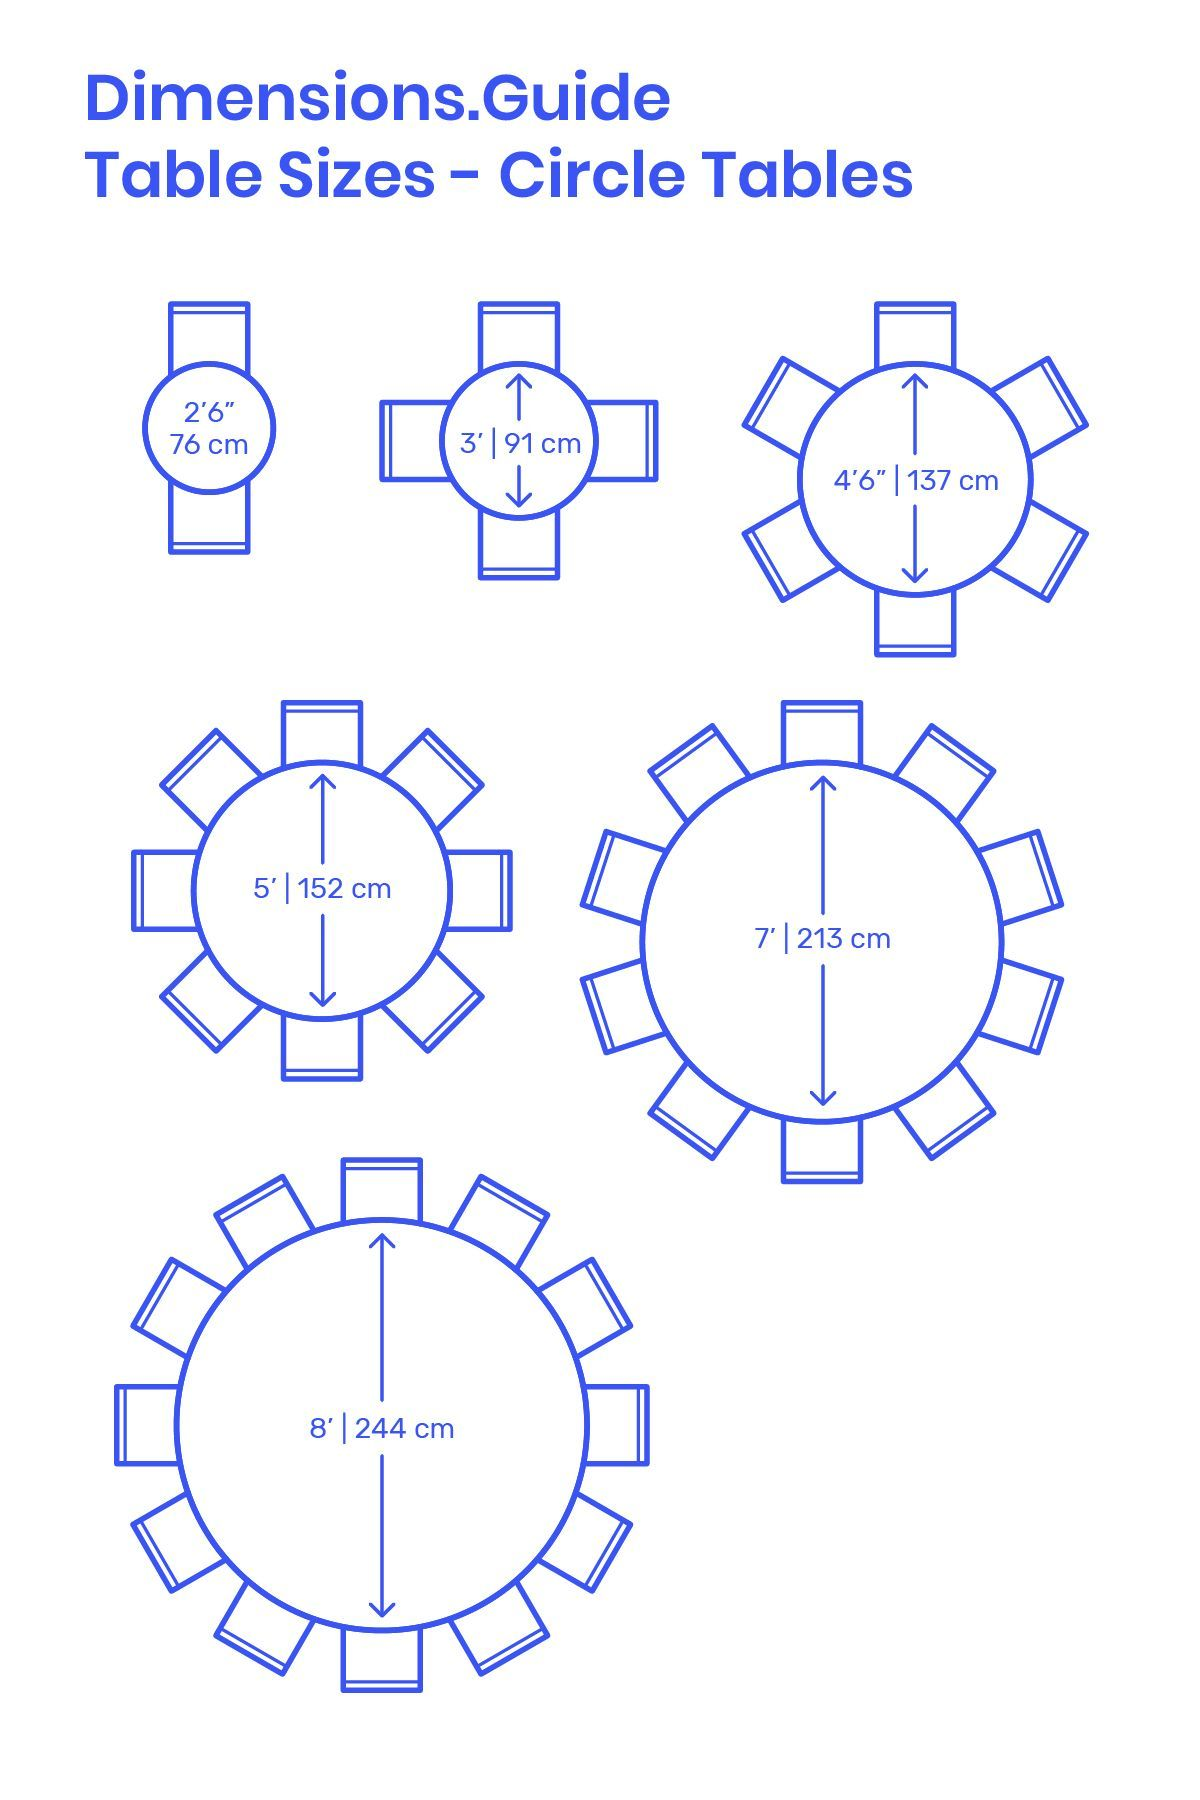 Circular Tables Are Space Efficient Tables Designed With A Variety